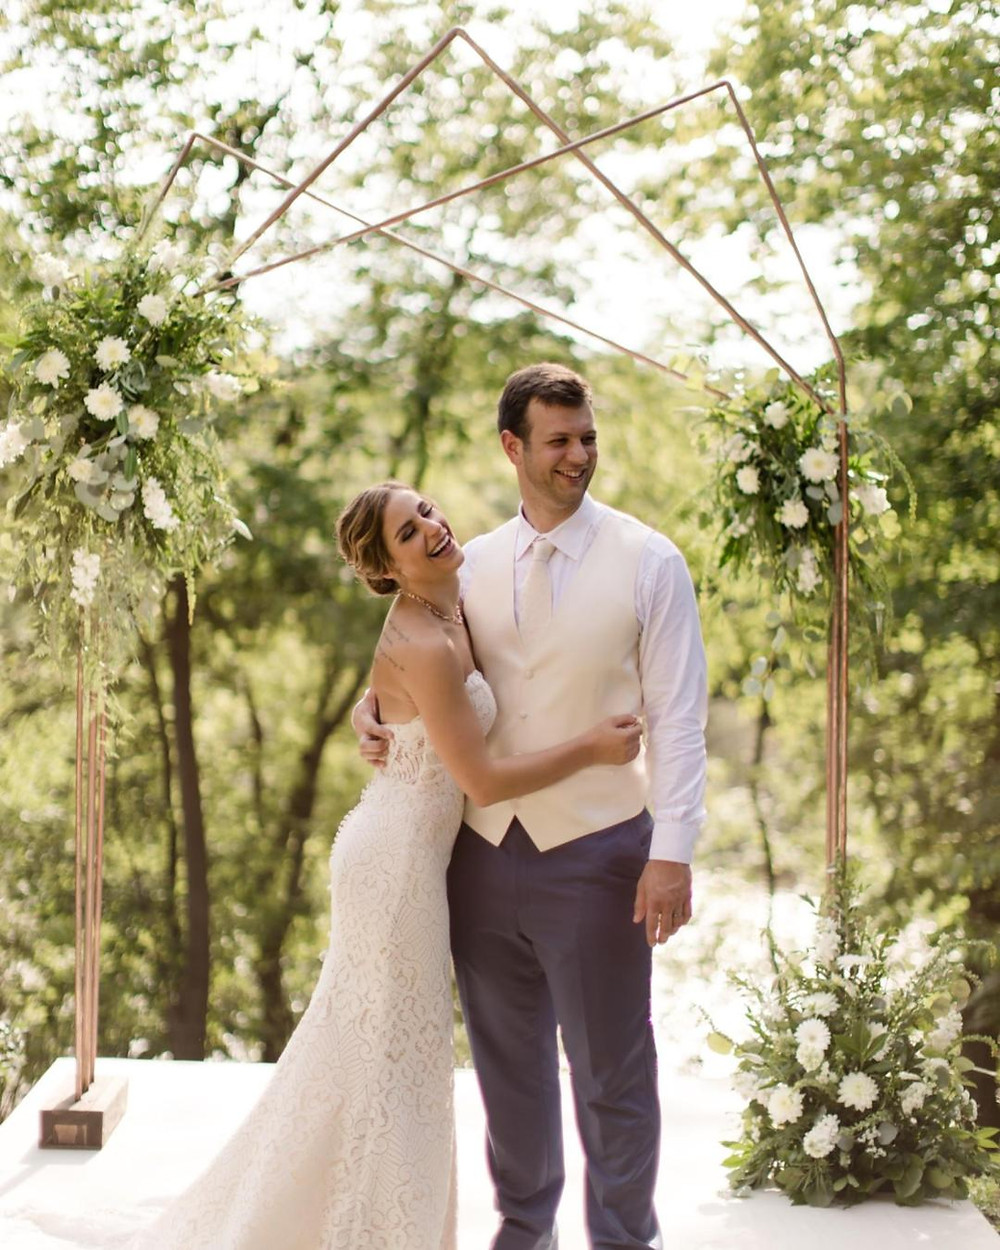 A couple laughs together under their ceremony arbor. White flowers w/ greenery.